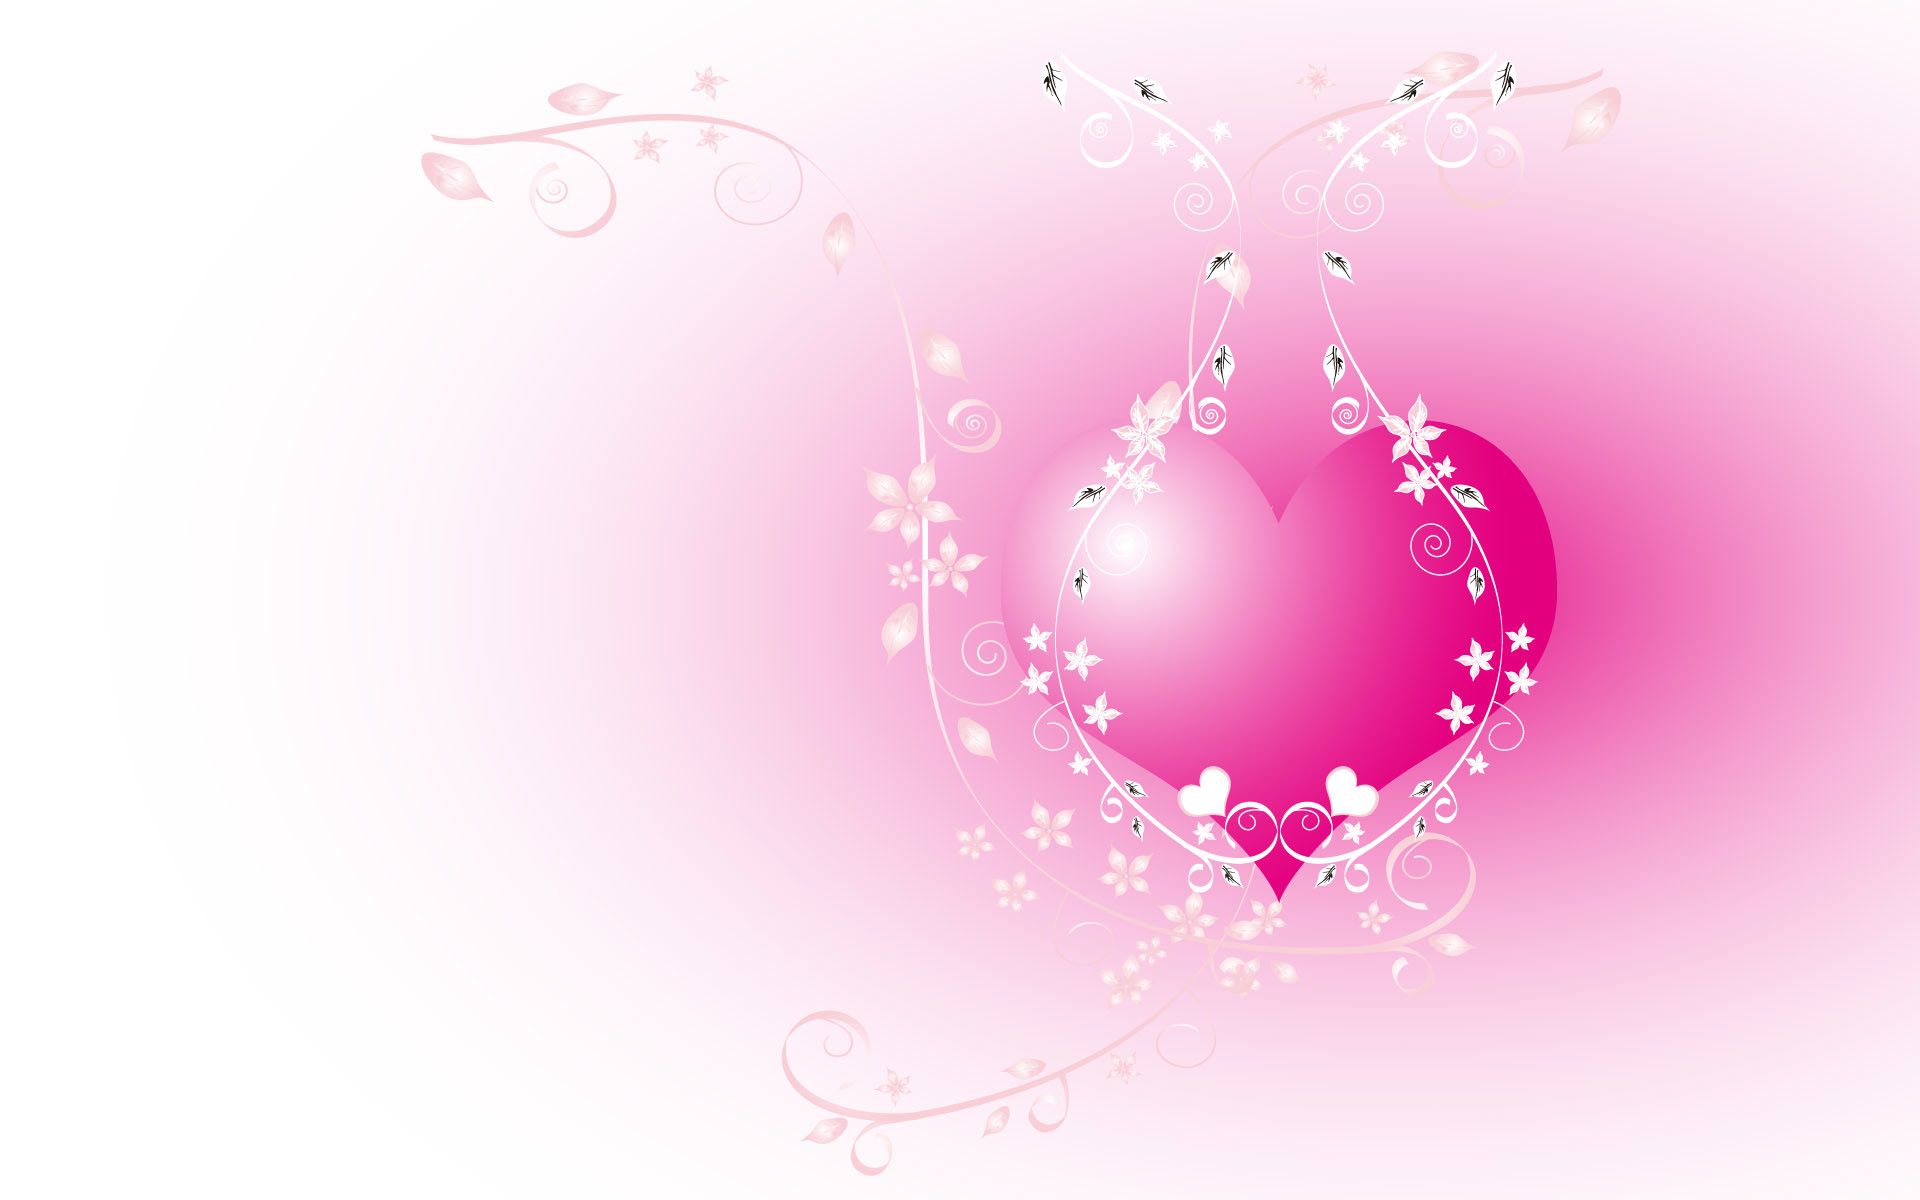 Download Hearts wallpaper, the pink heart image